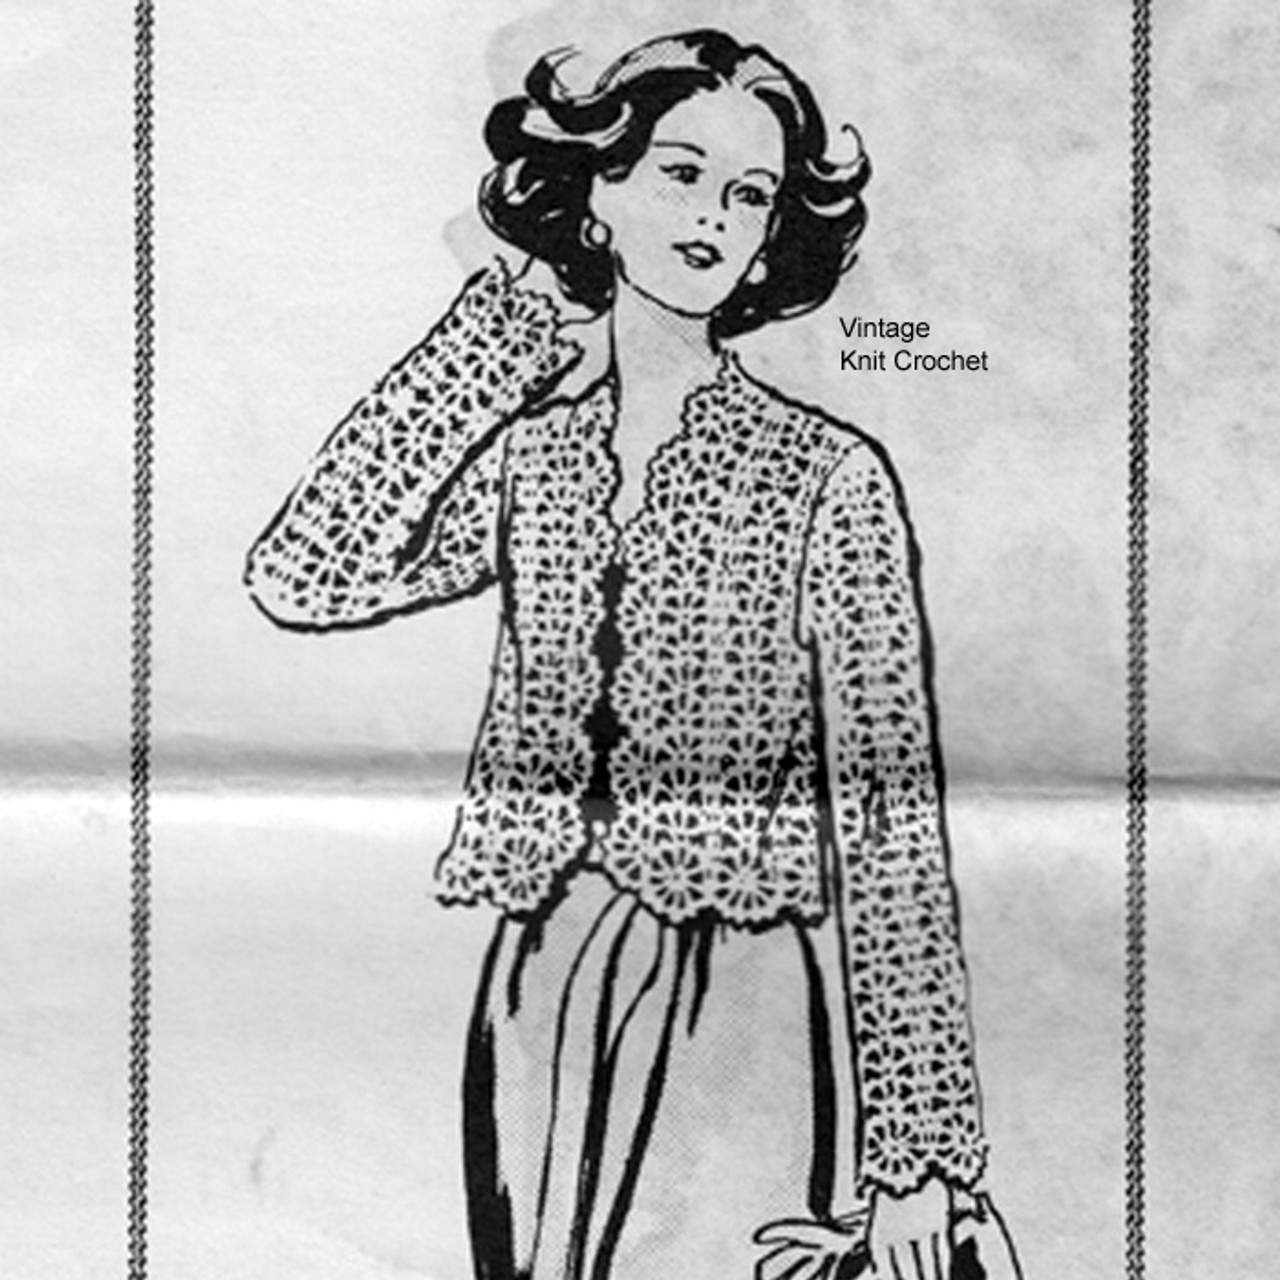 Mail Order 7230, Scalloped Jacket Crochet Pattern